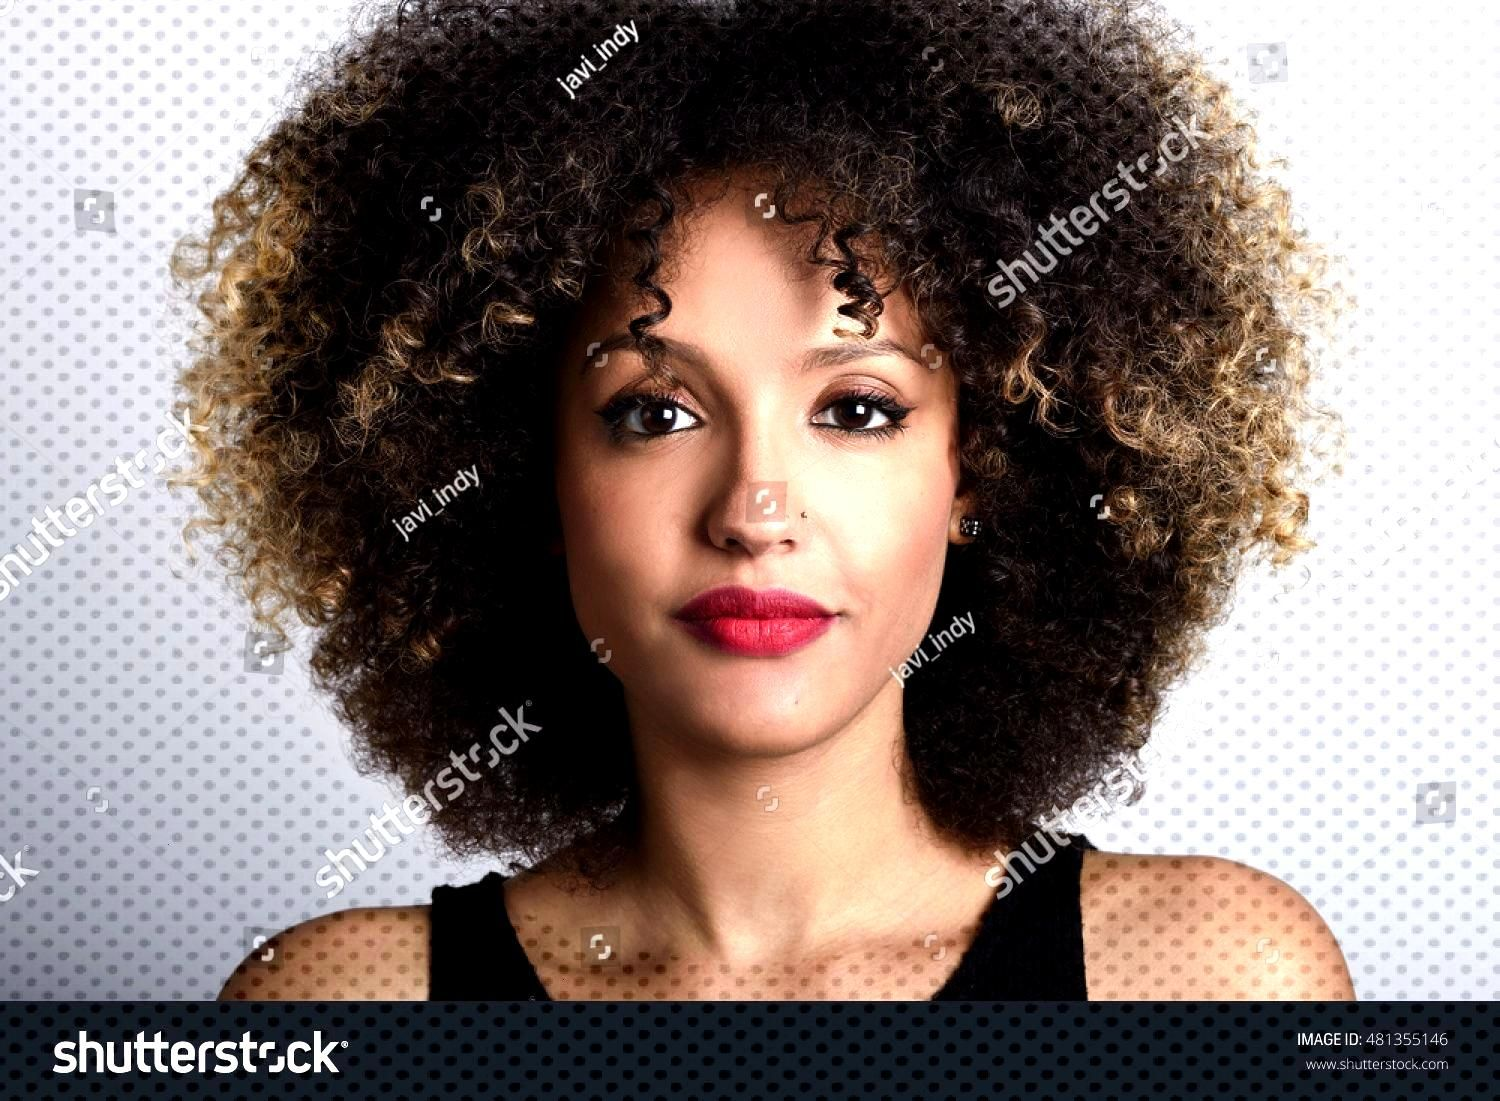 Young black woman with afro hairstyle on white background. Girl with african hairstyle. Studio shot